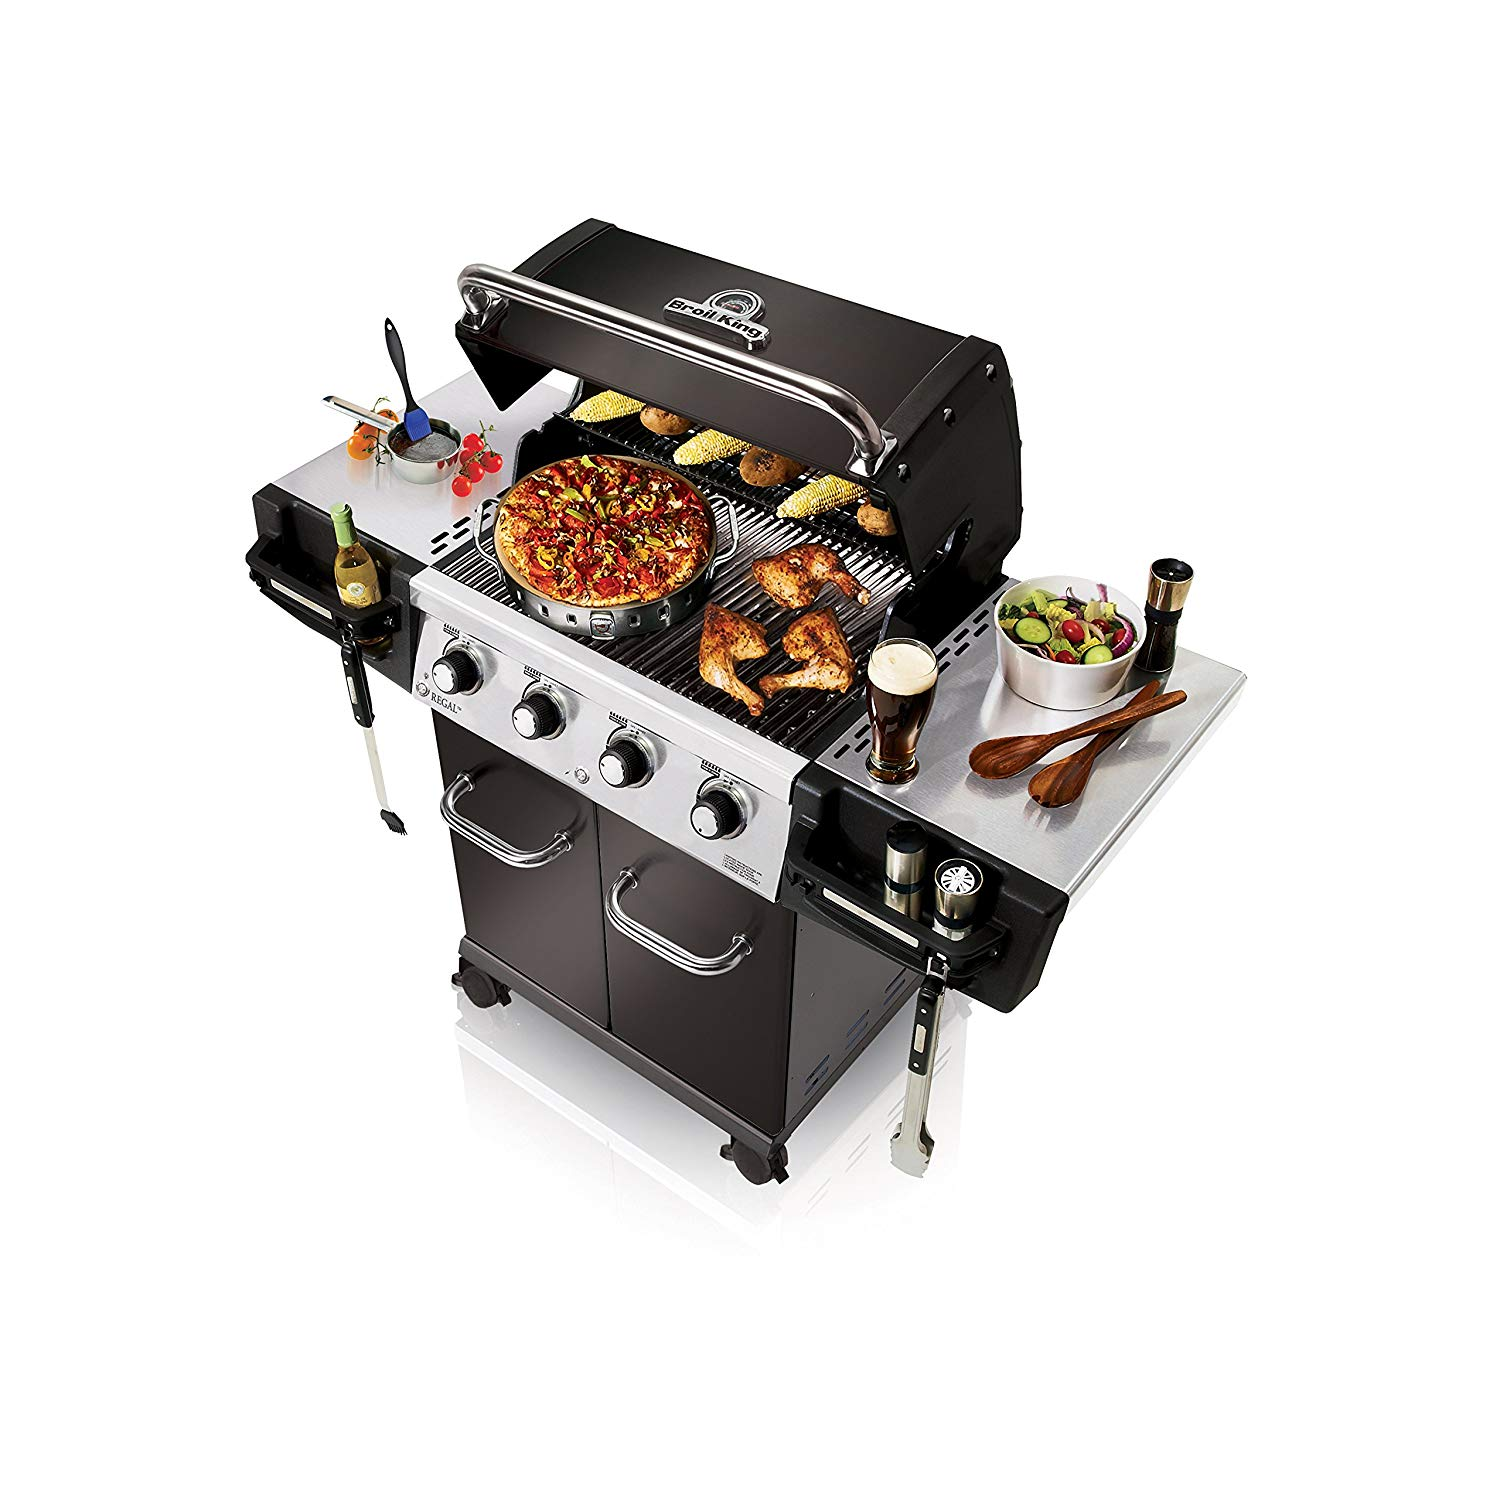 Broil Gasgrill Broil King 956214 Regal 420 Pro Gas Grill Review Best Grill Reviews